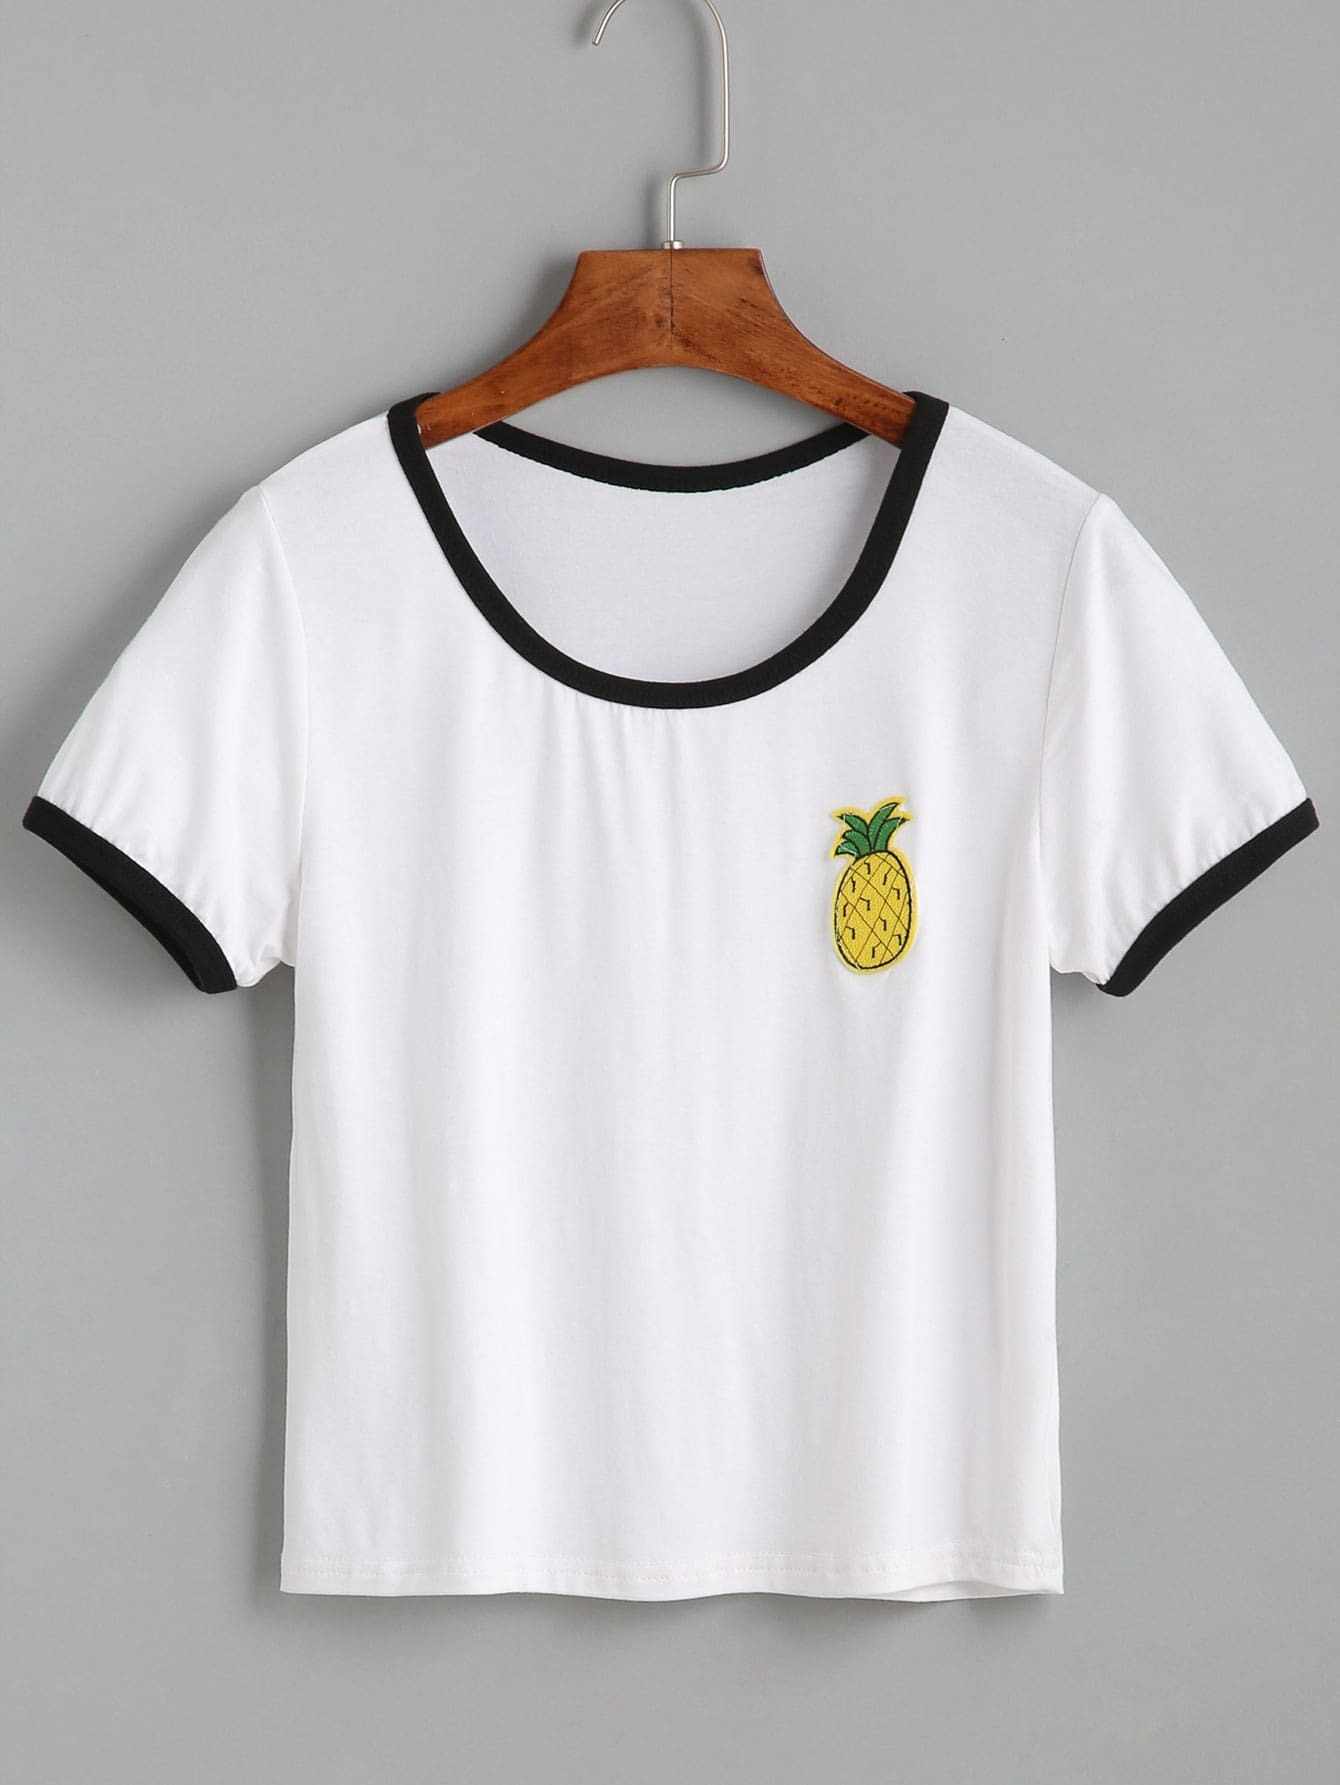 White Contrast Trim Pineapple Embroidered T-shirt RTSH160811006